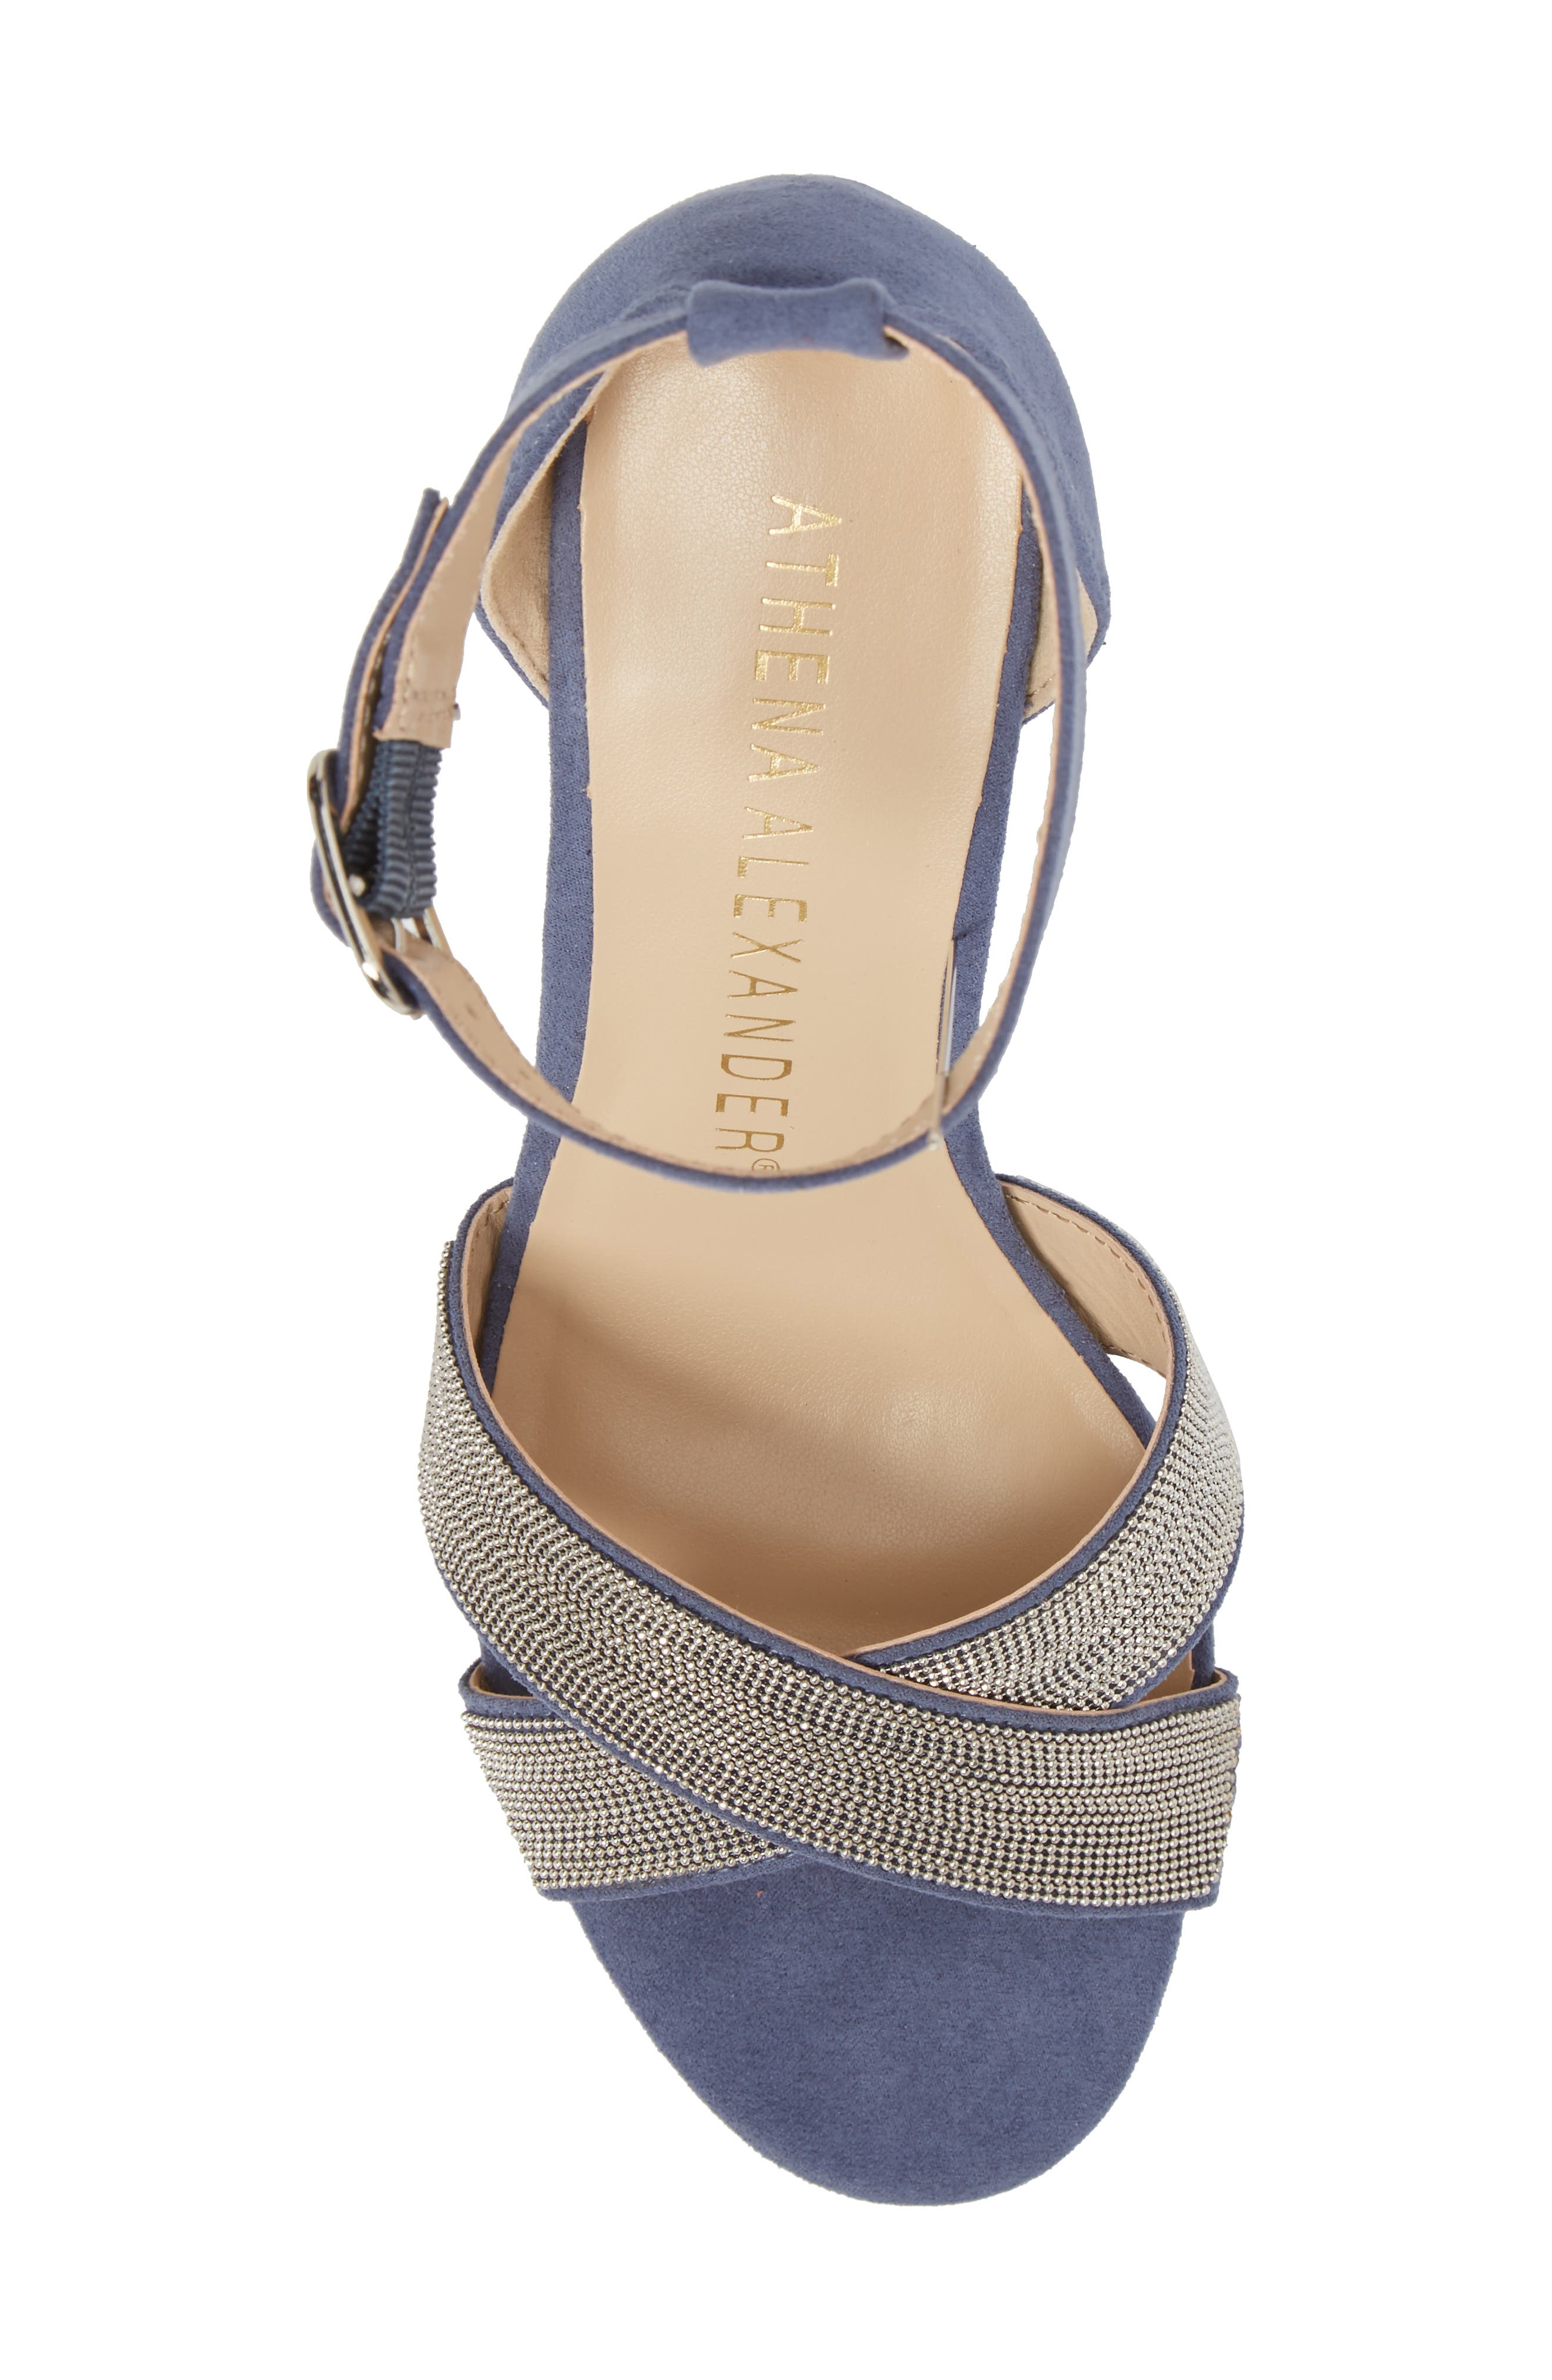 Zorra Wedge Sandal,                             Alternate thumbnail 5, color,                             Blue Suede